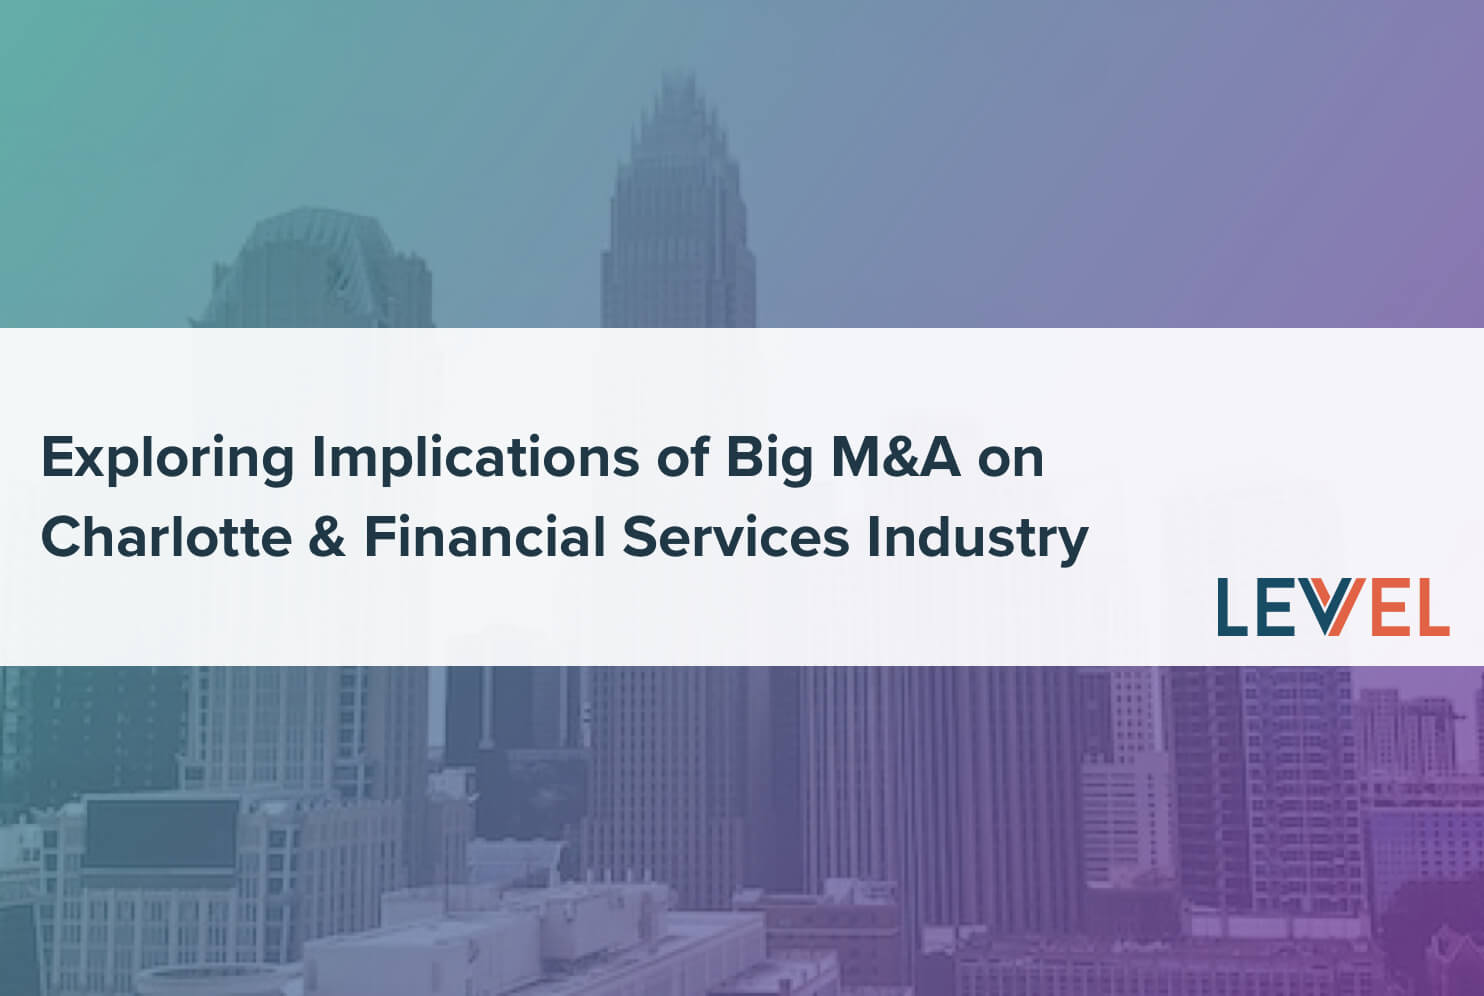 Exploring Implications of Big M&A on Charlotte & Financial Services Industry